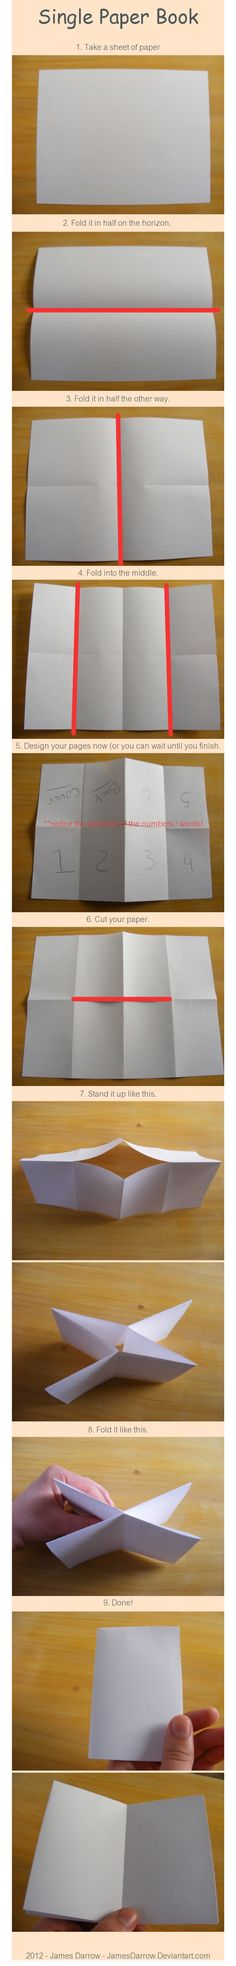 Single-Paper Book: You just need single sheet of paper to make a mini-book. Use paper to get a bigger book, for a mini-book. Mini Albums, Activities For Kids, Crafts For Kids, Ideias Diy, Paper Crafts, Diy Crafts, Book Crafts, Paper Book, Book Binding